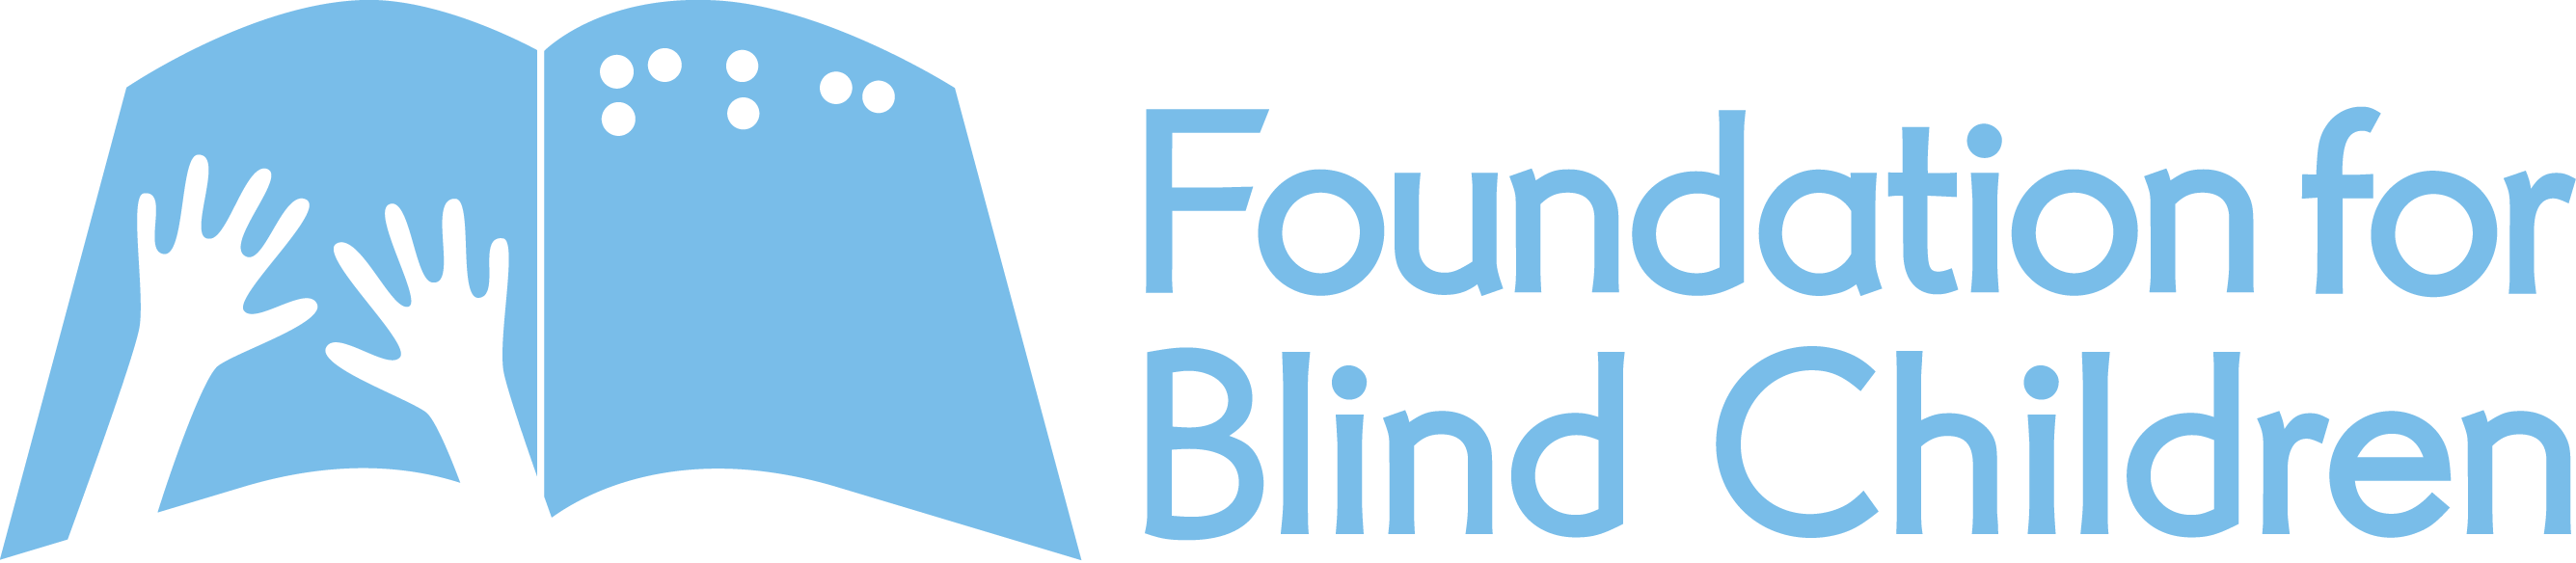 national nfbnewsline life want nfb live square for logo the blind blinds you tagline of with federation newsline and resources newslinelogosquare